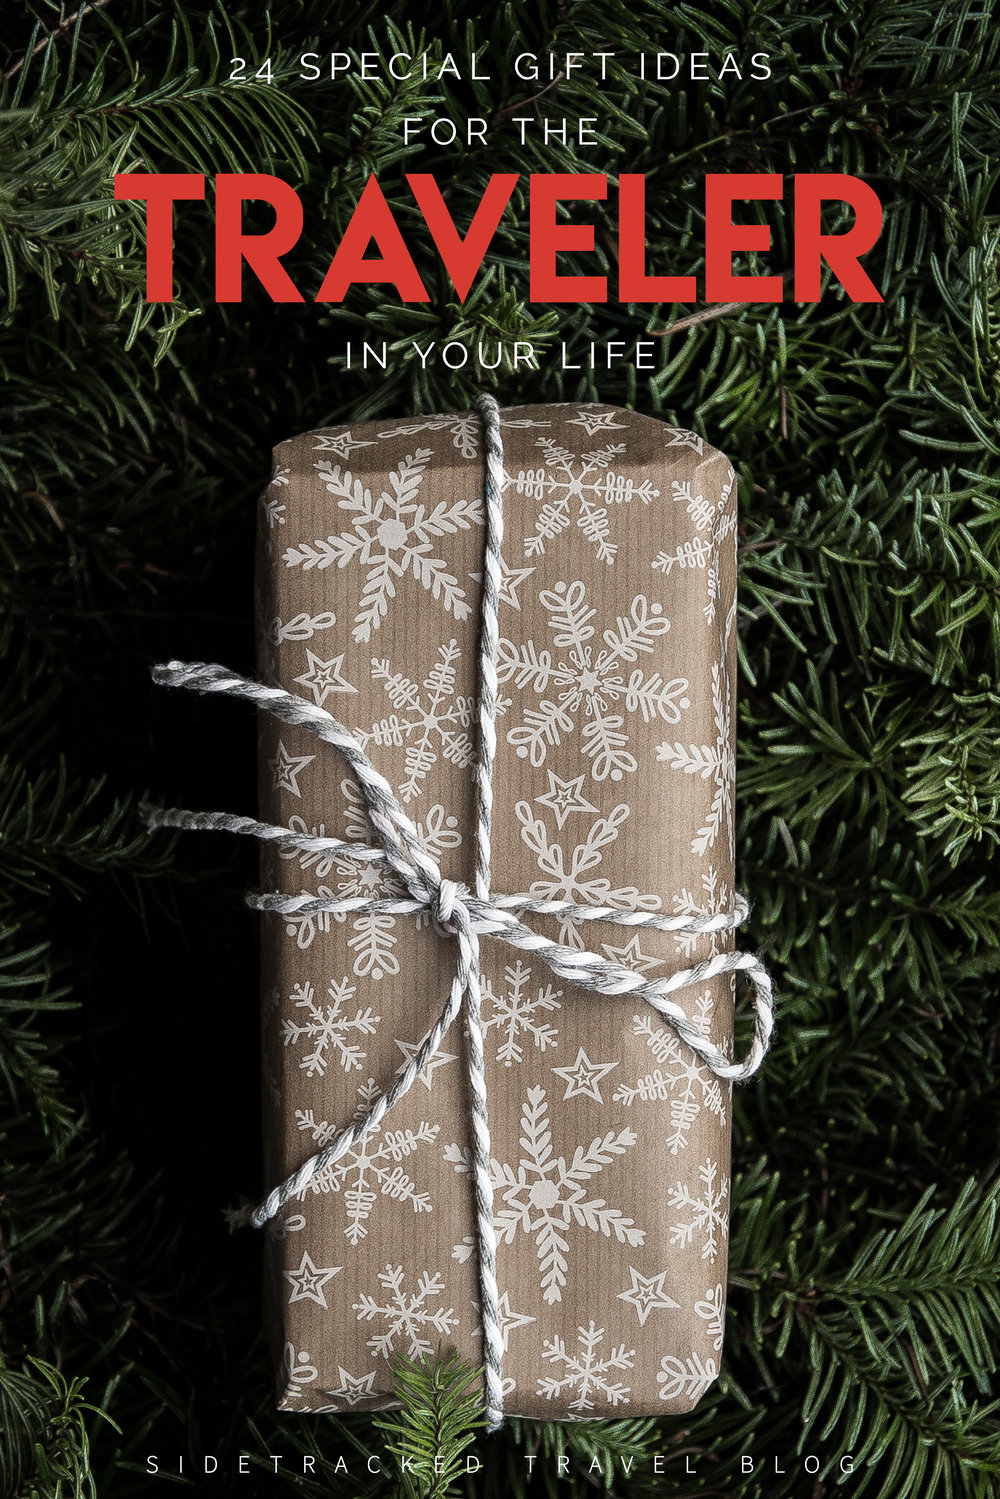 With the holidays just around the corner, I've put together this list of 24 unique and practical gift ideas that I hope you or the traveler in your life will love!